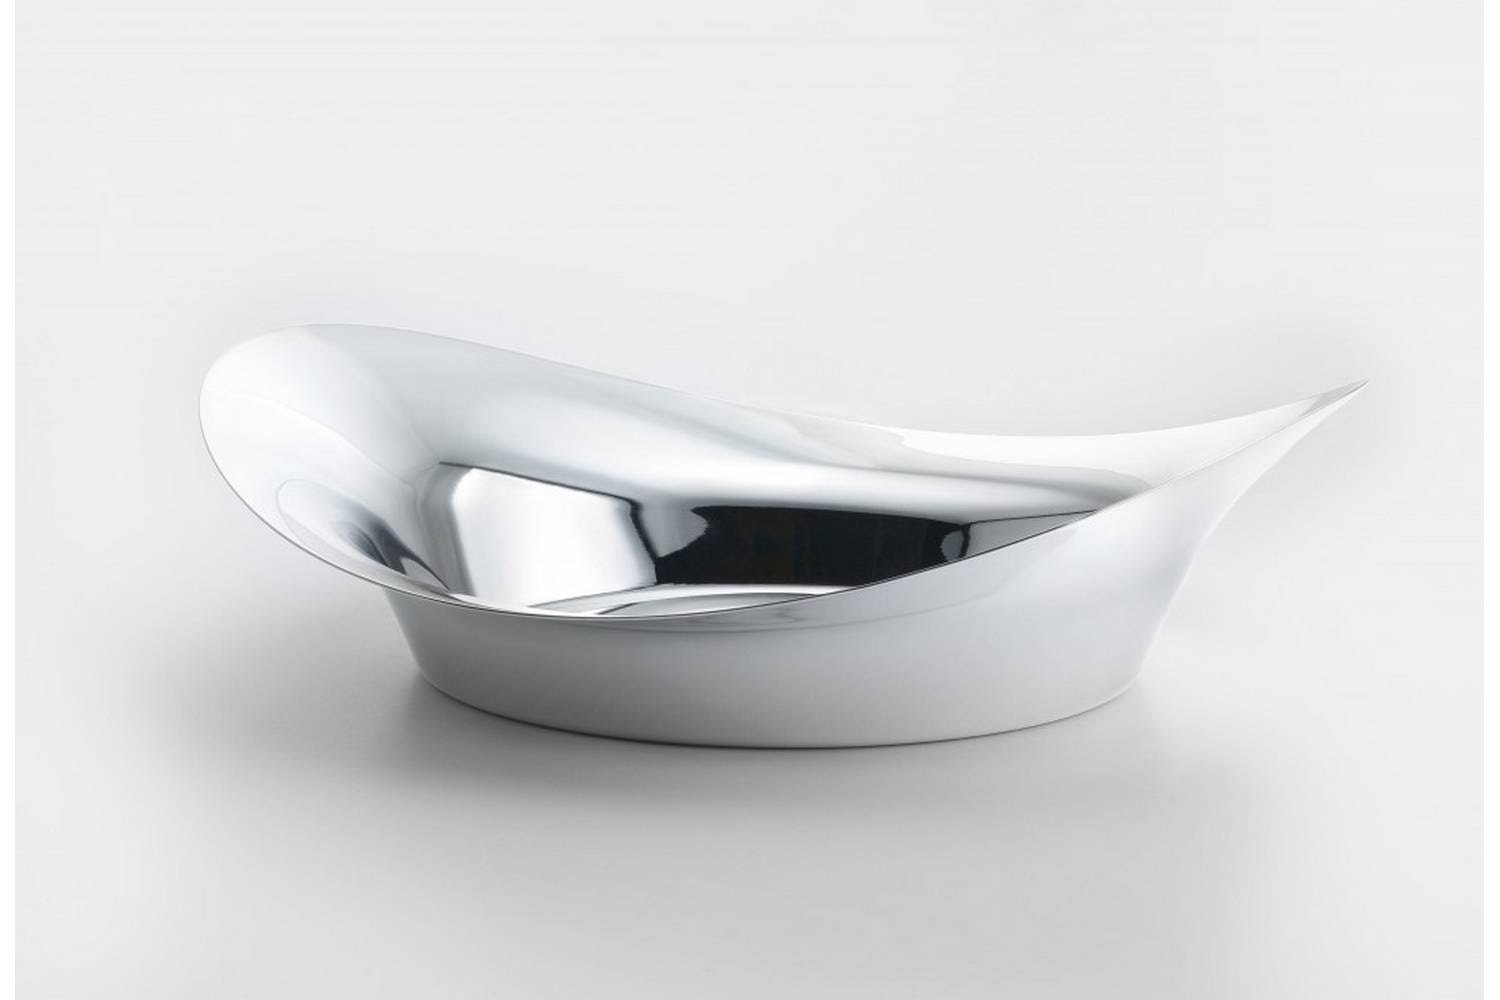 Circle Bowl by Finn Juhl for Architectmade